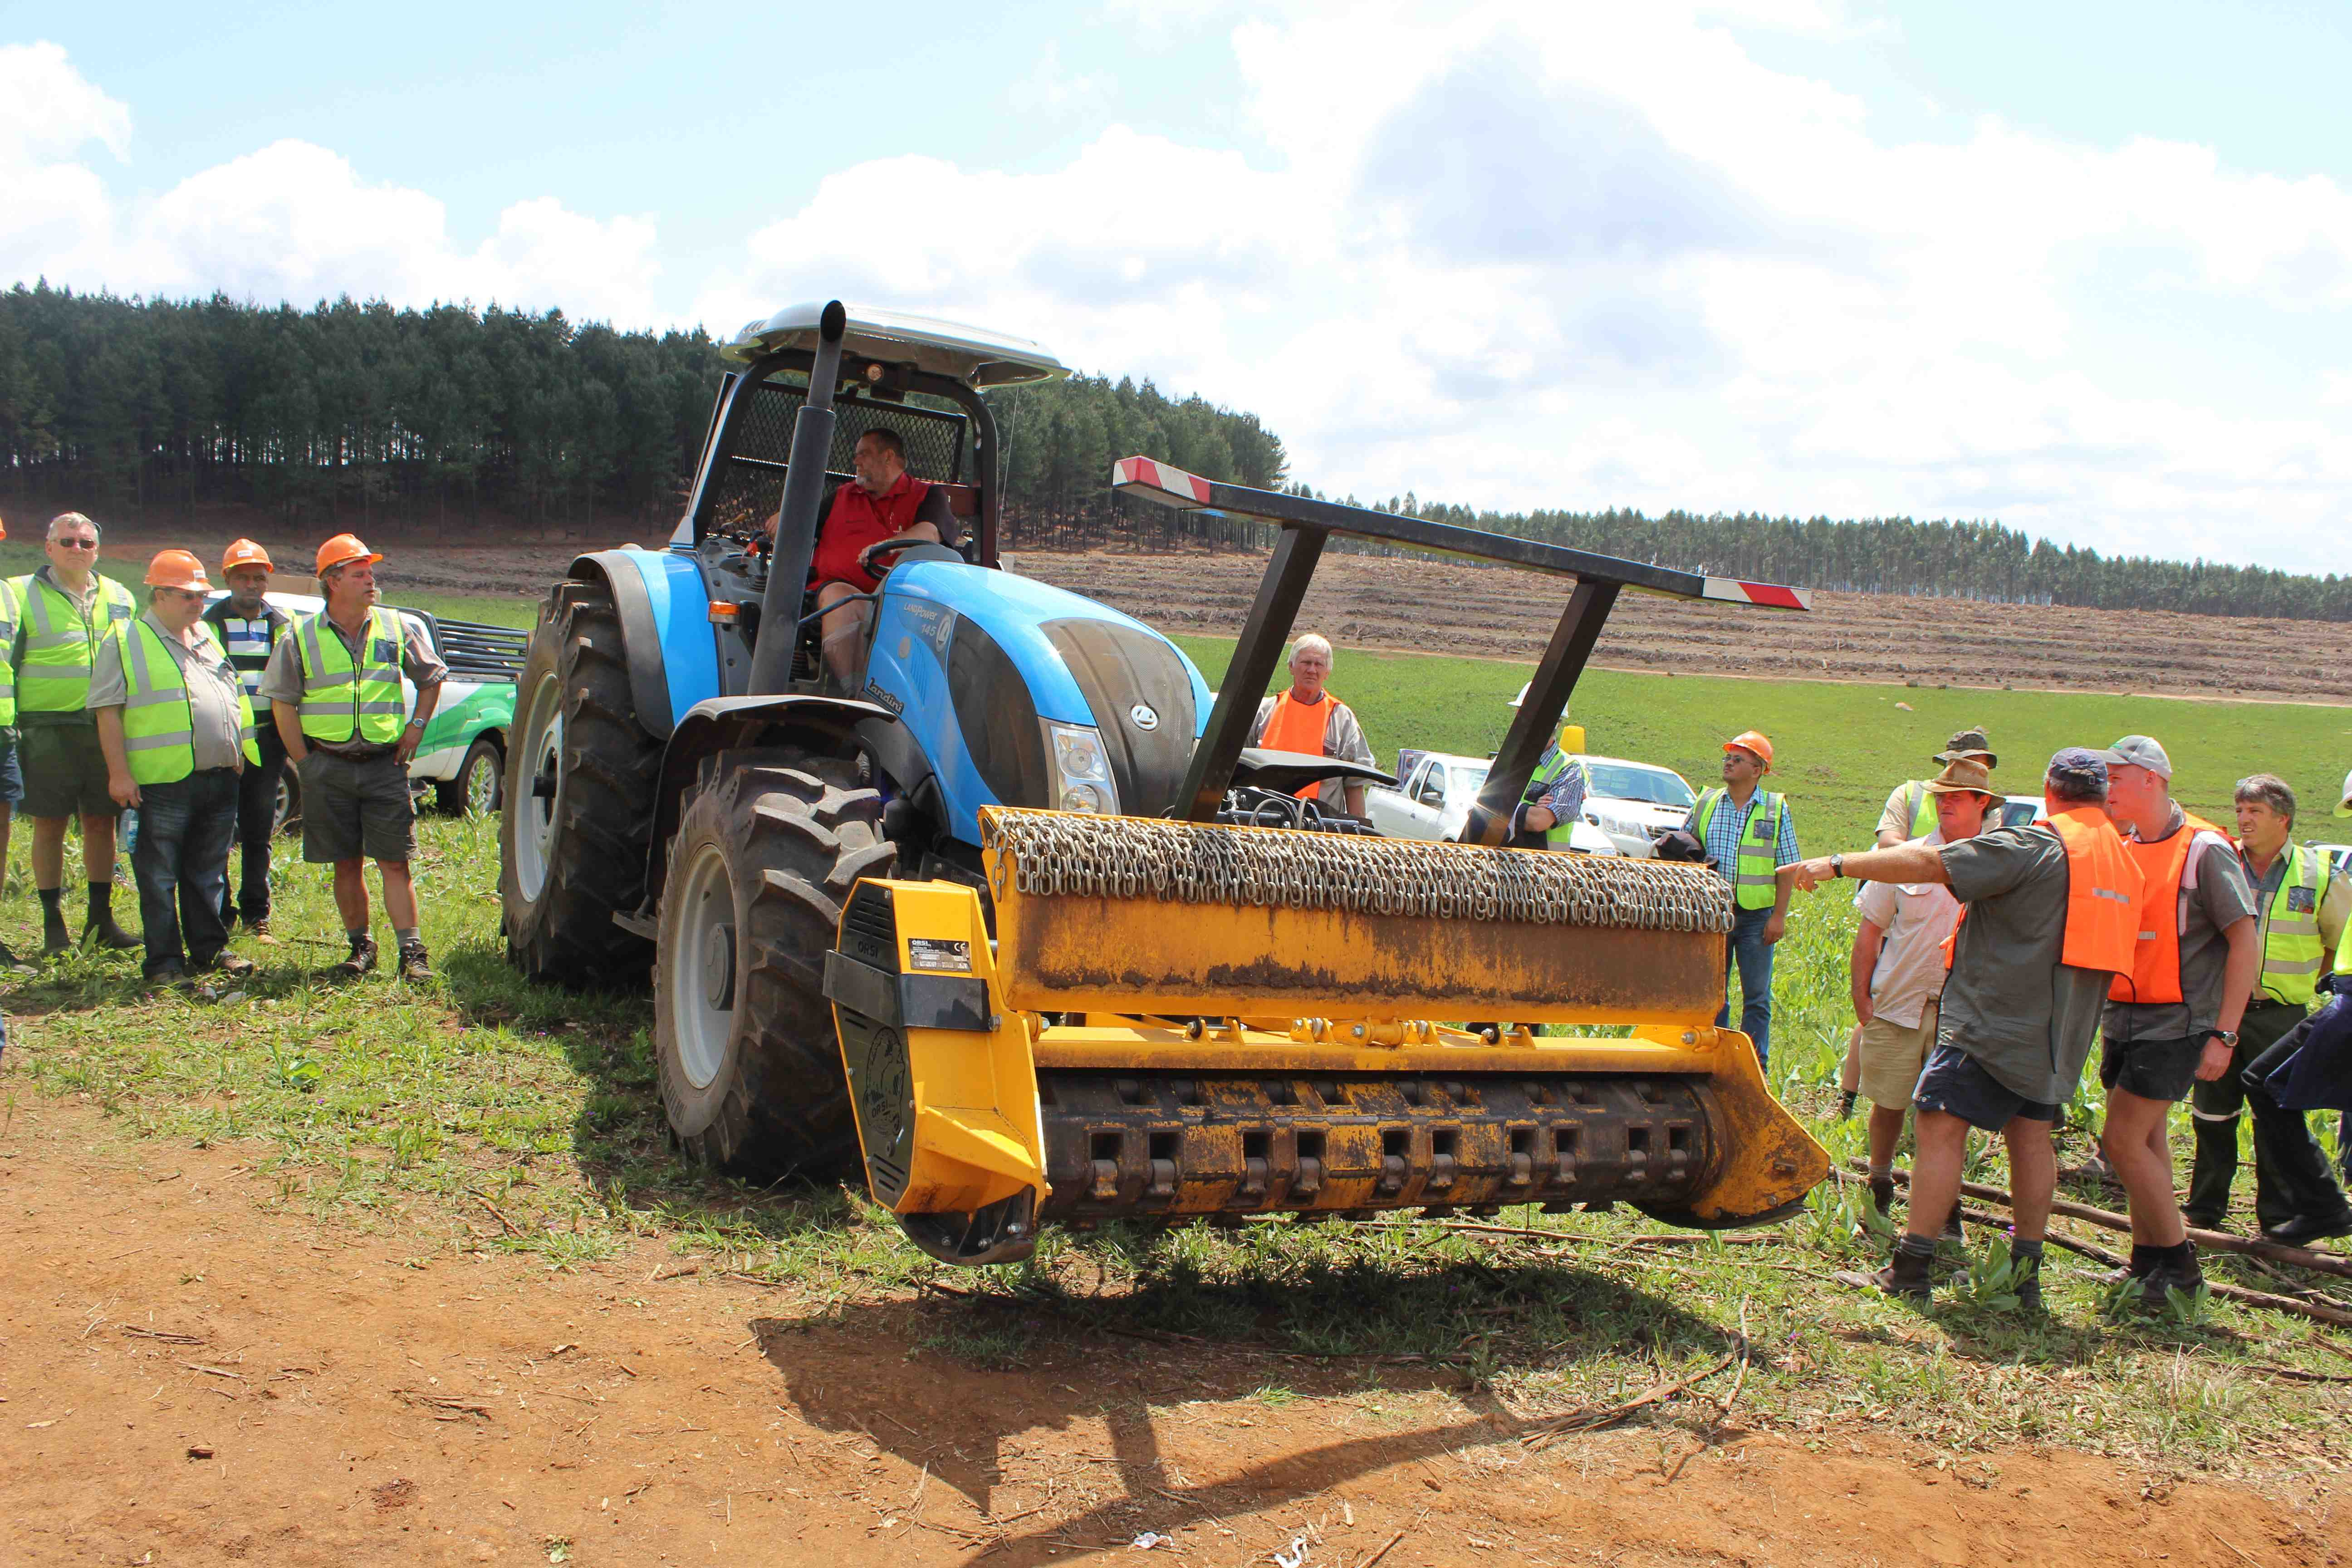 Atemberaubend Mechanisation changing the face of forestry - SA Forestry Online #MK_71